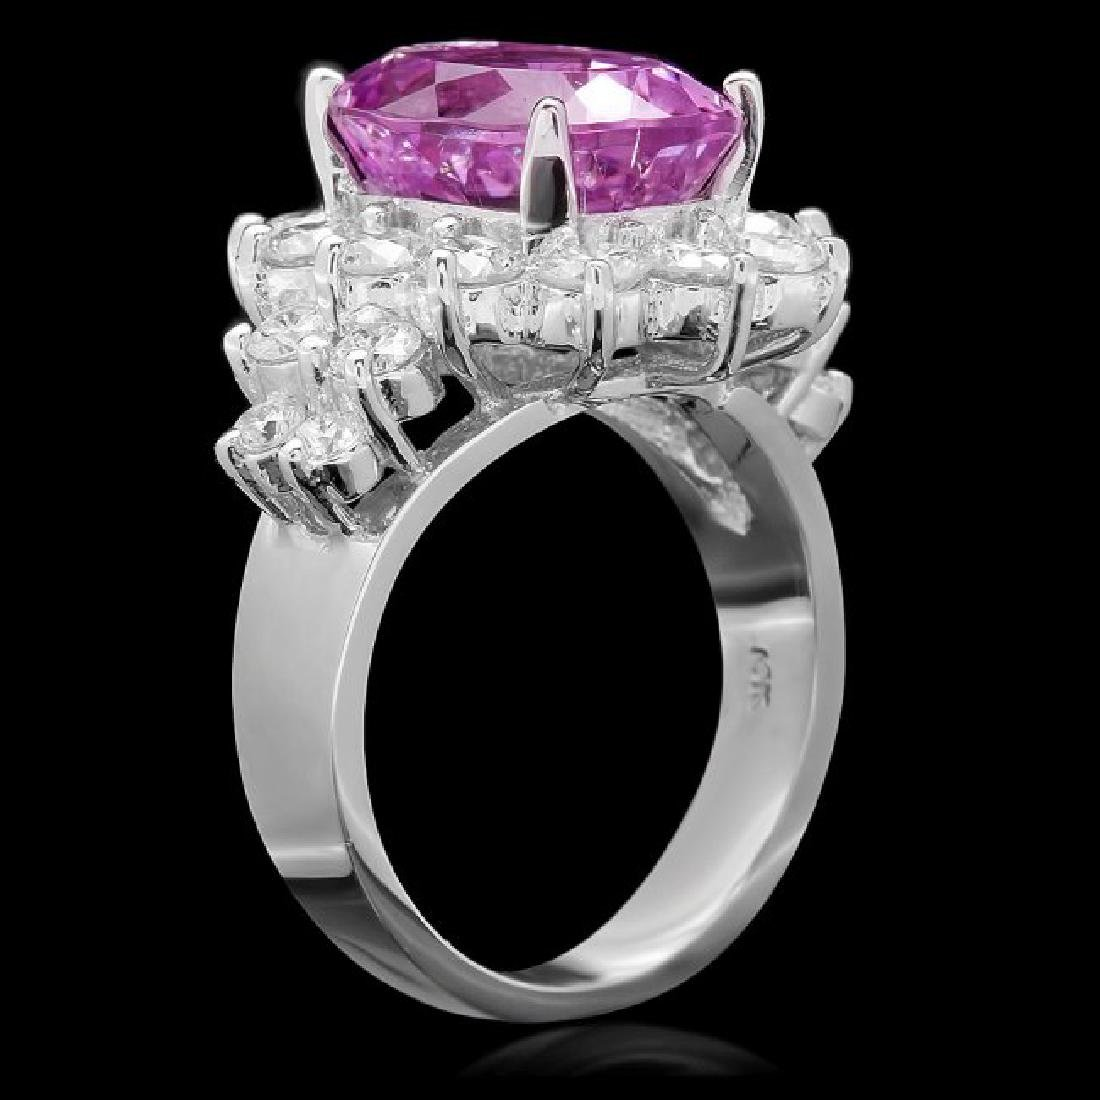 14k White Gold 6.00ct Kunzite 2.10ct Diamond Ring - 2